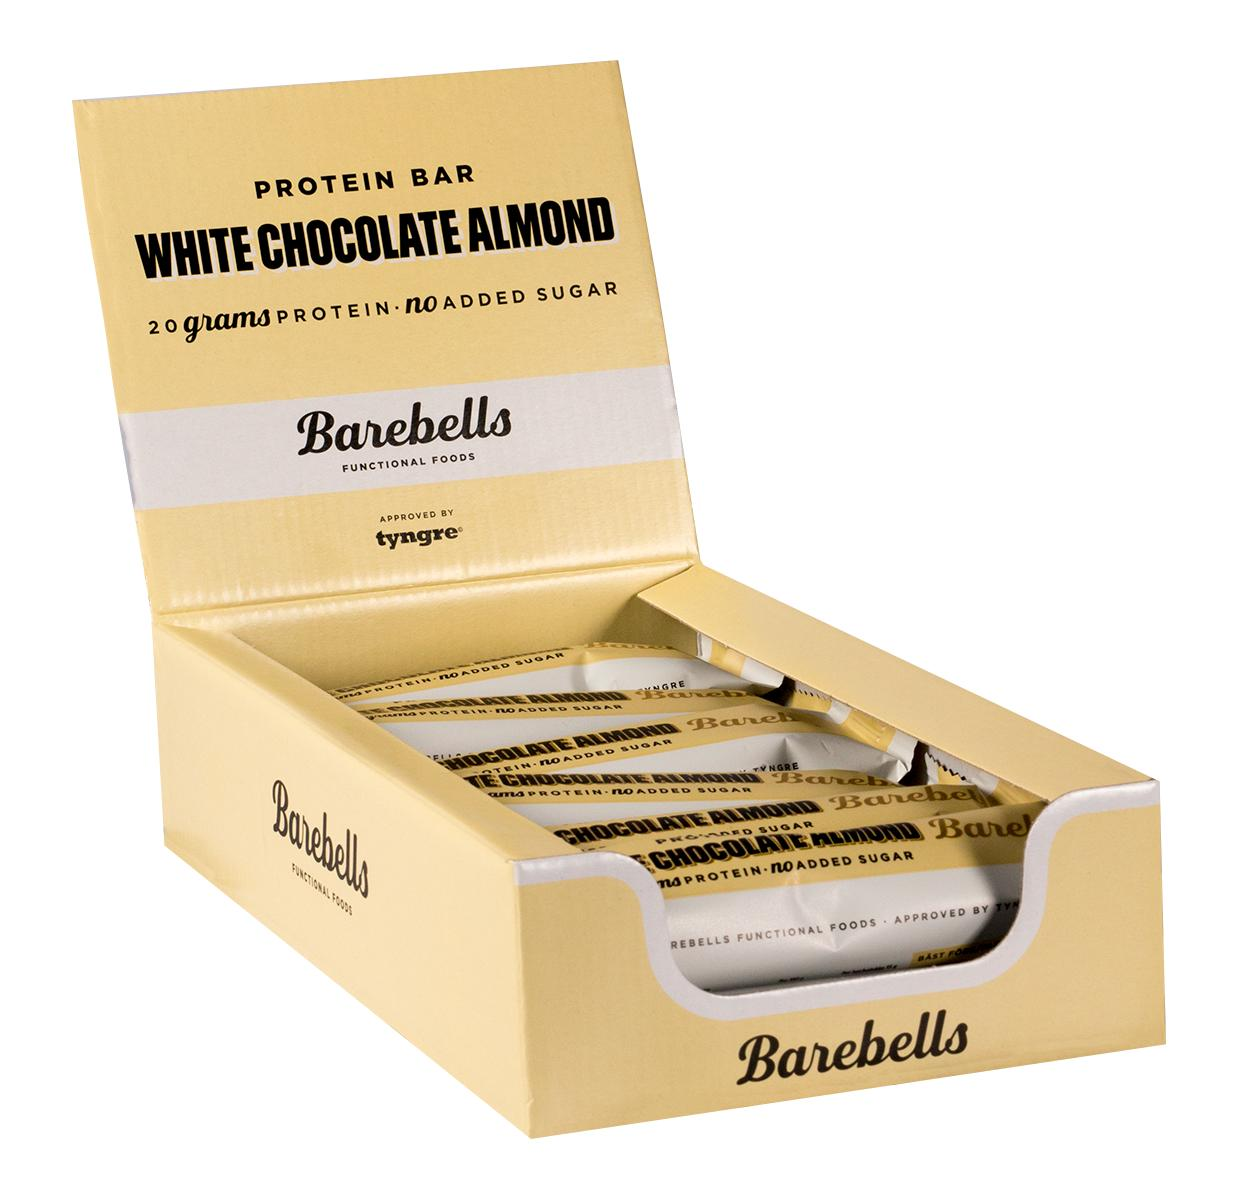 Barebells Protein Bar (12 Bars) - White Chocolate Almond By Nutrition Depot.